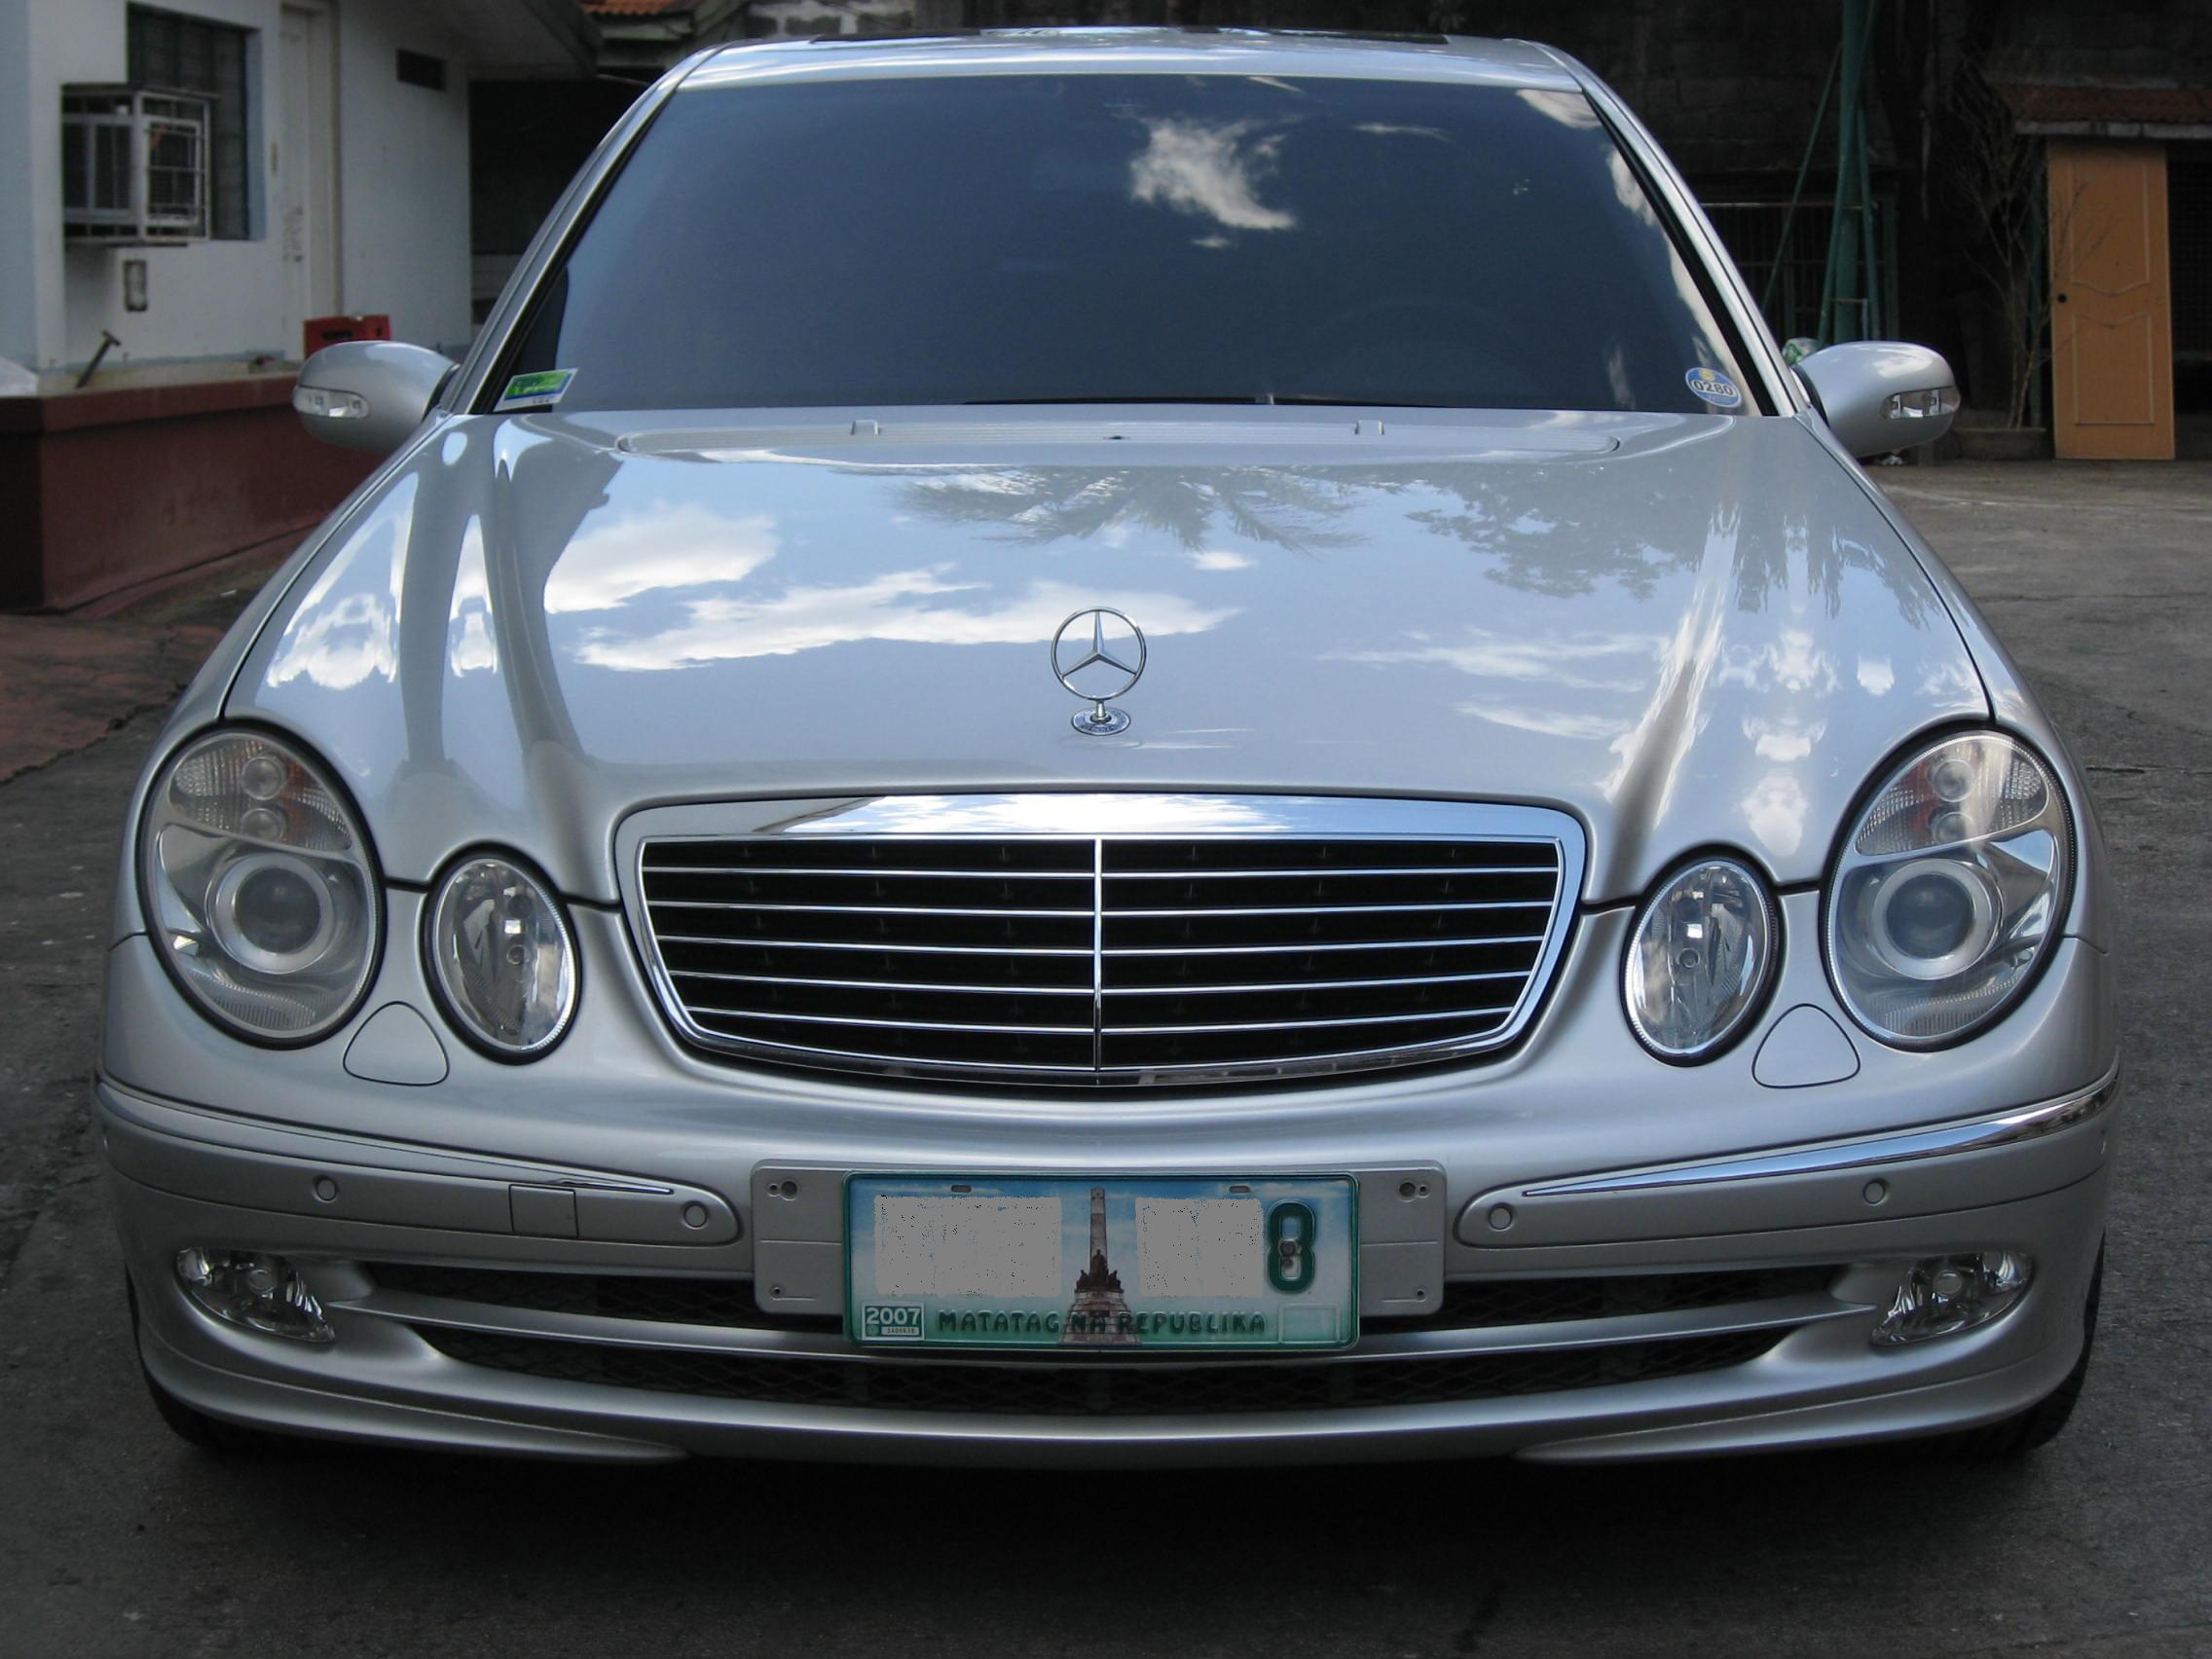 mercedes benz e270 cdi picture 14 reviews news specs buy car